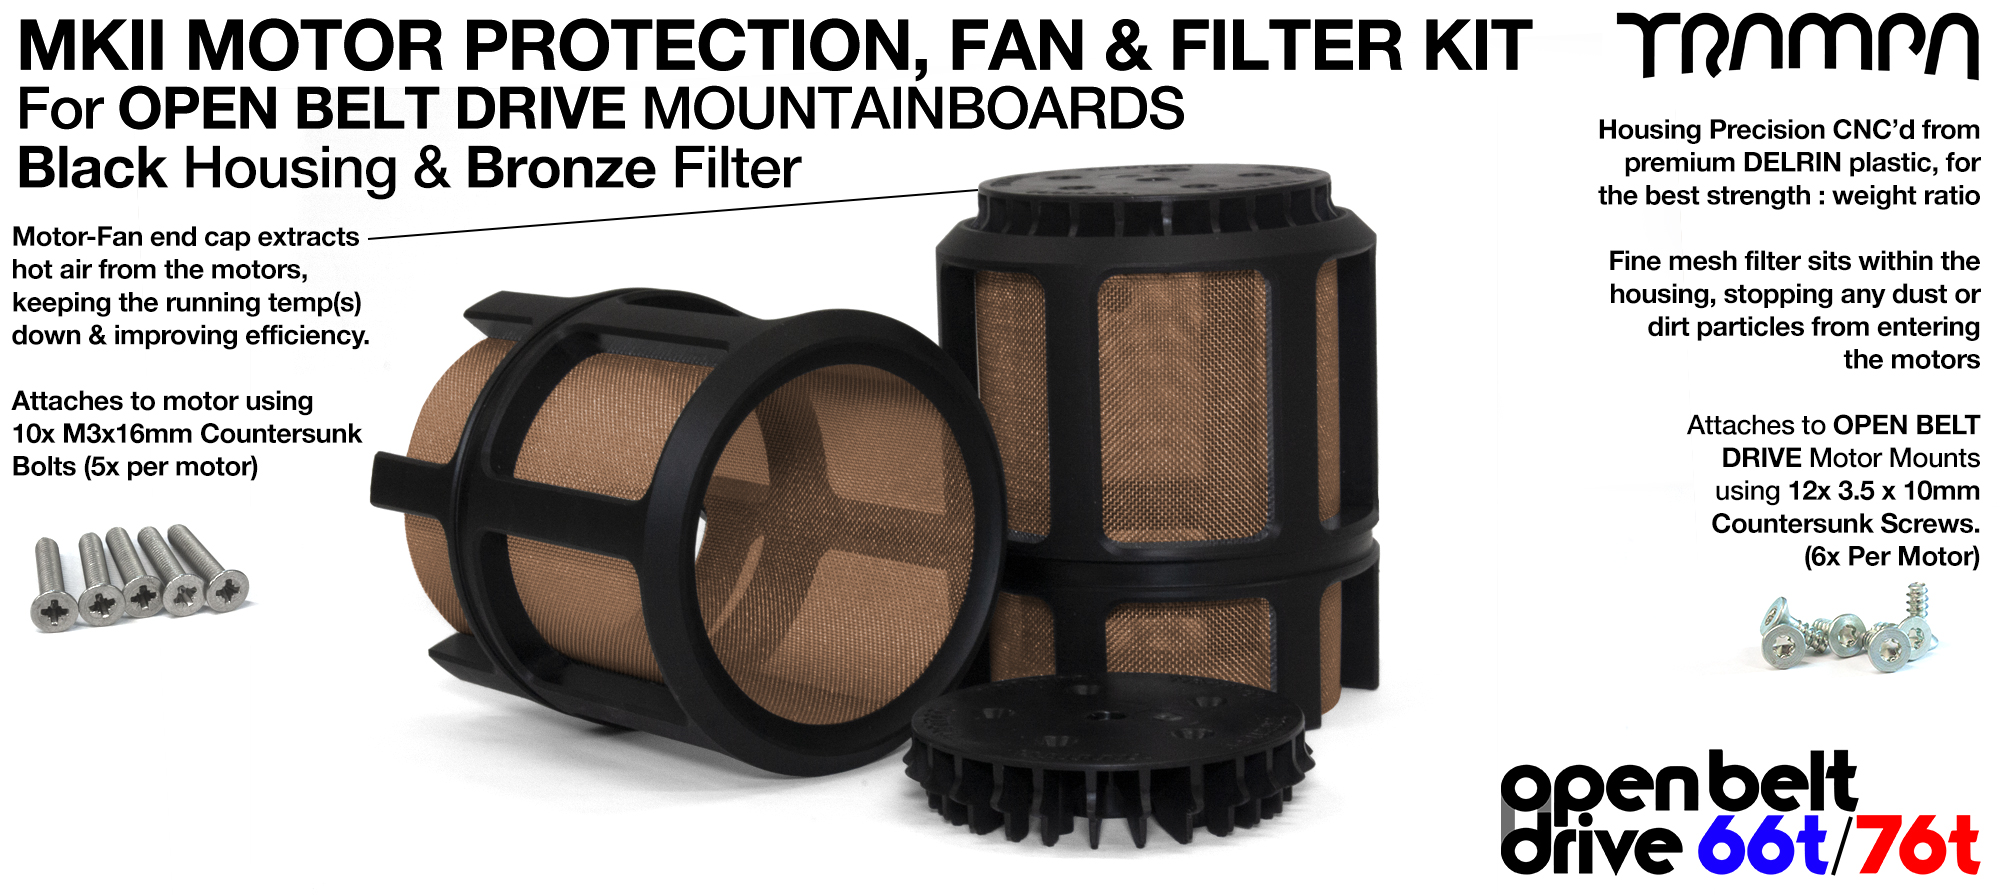 BRONZE Mesh filter in Motor Protection Cage with Fan